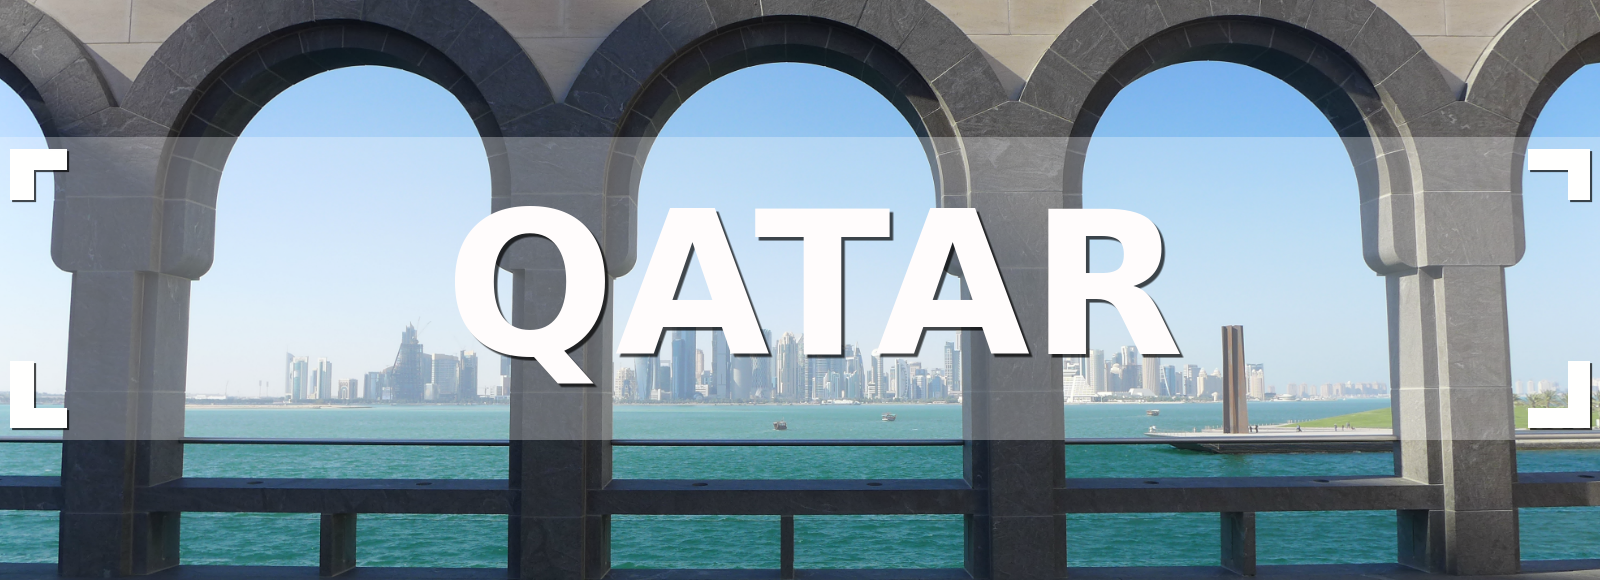 Destination: Qatar